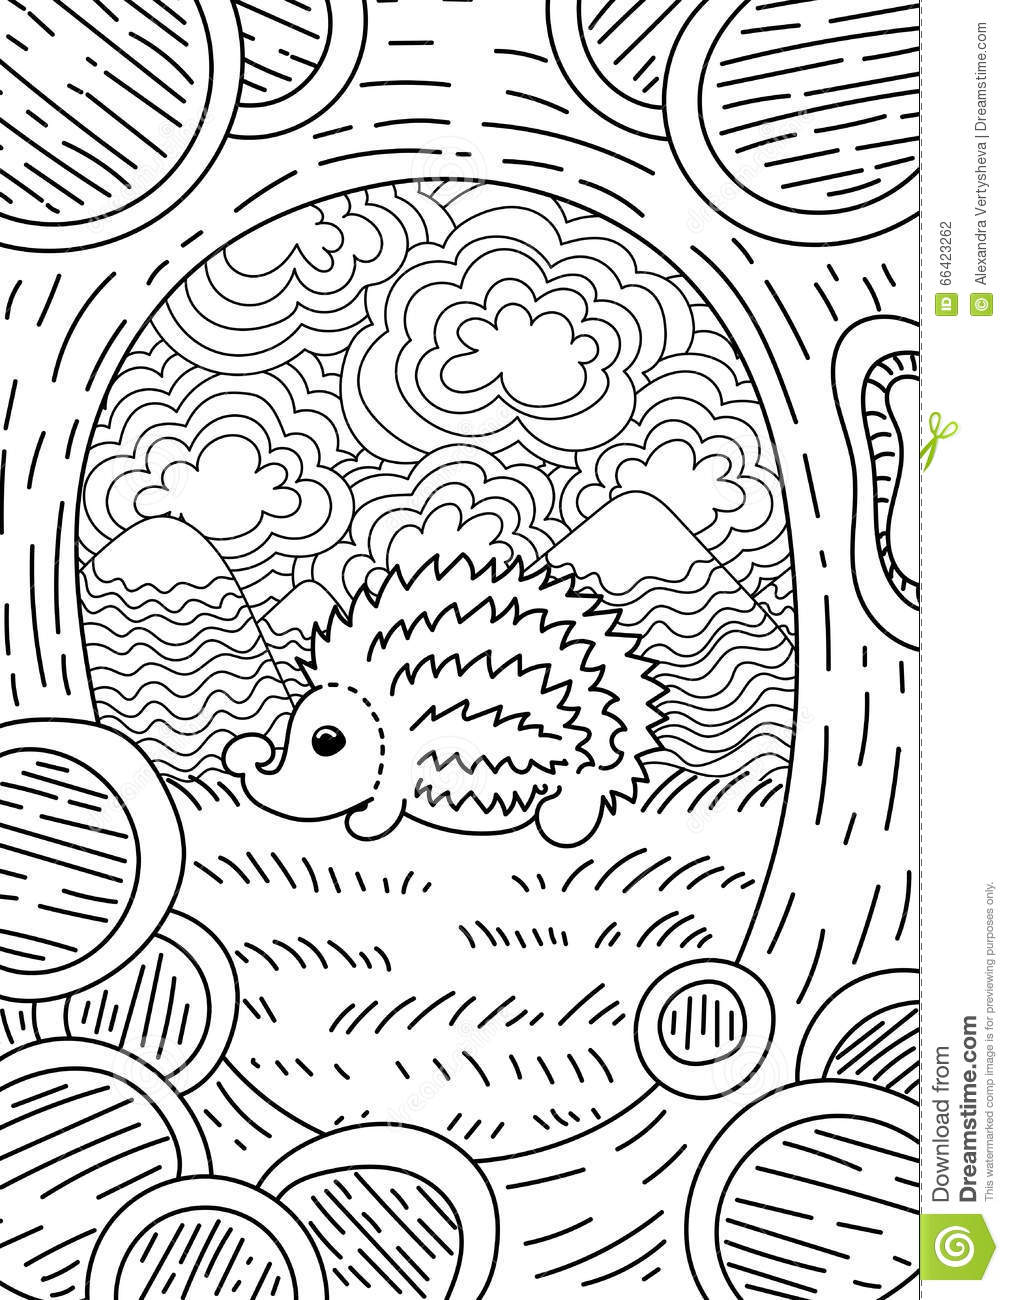 printable coloring pages ethnic children - photo#1